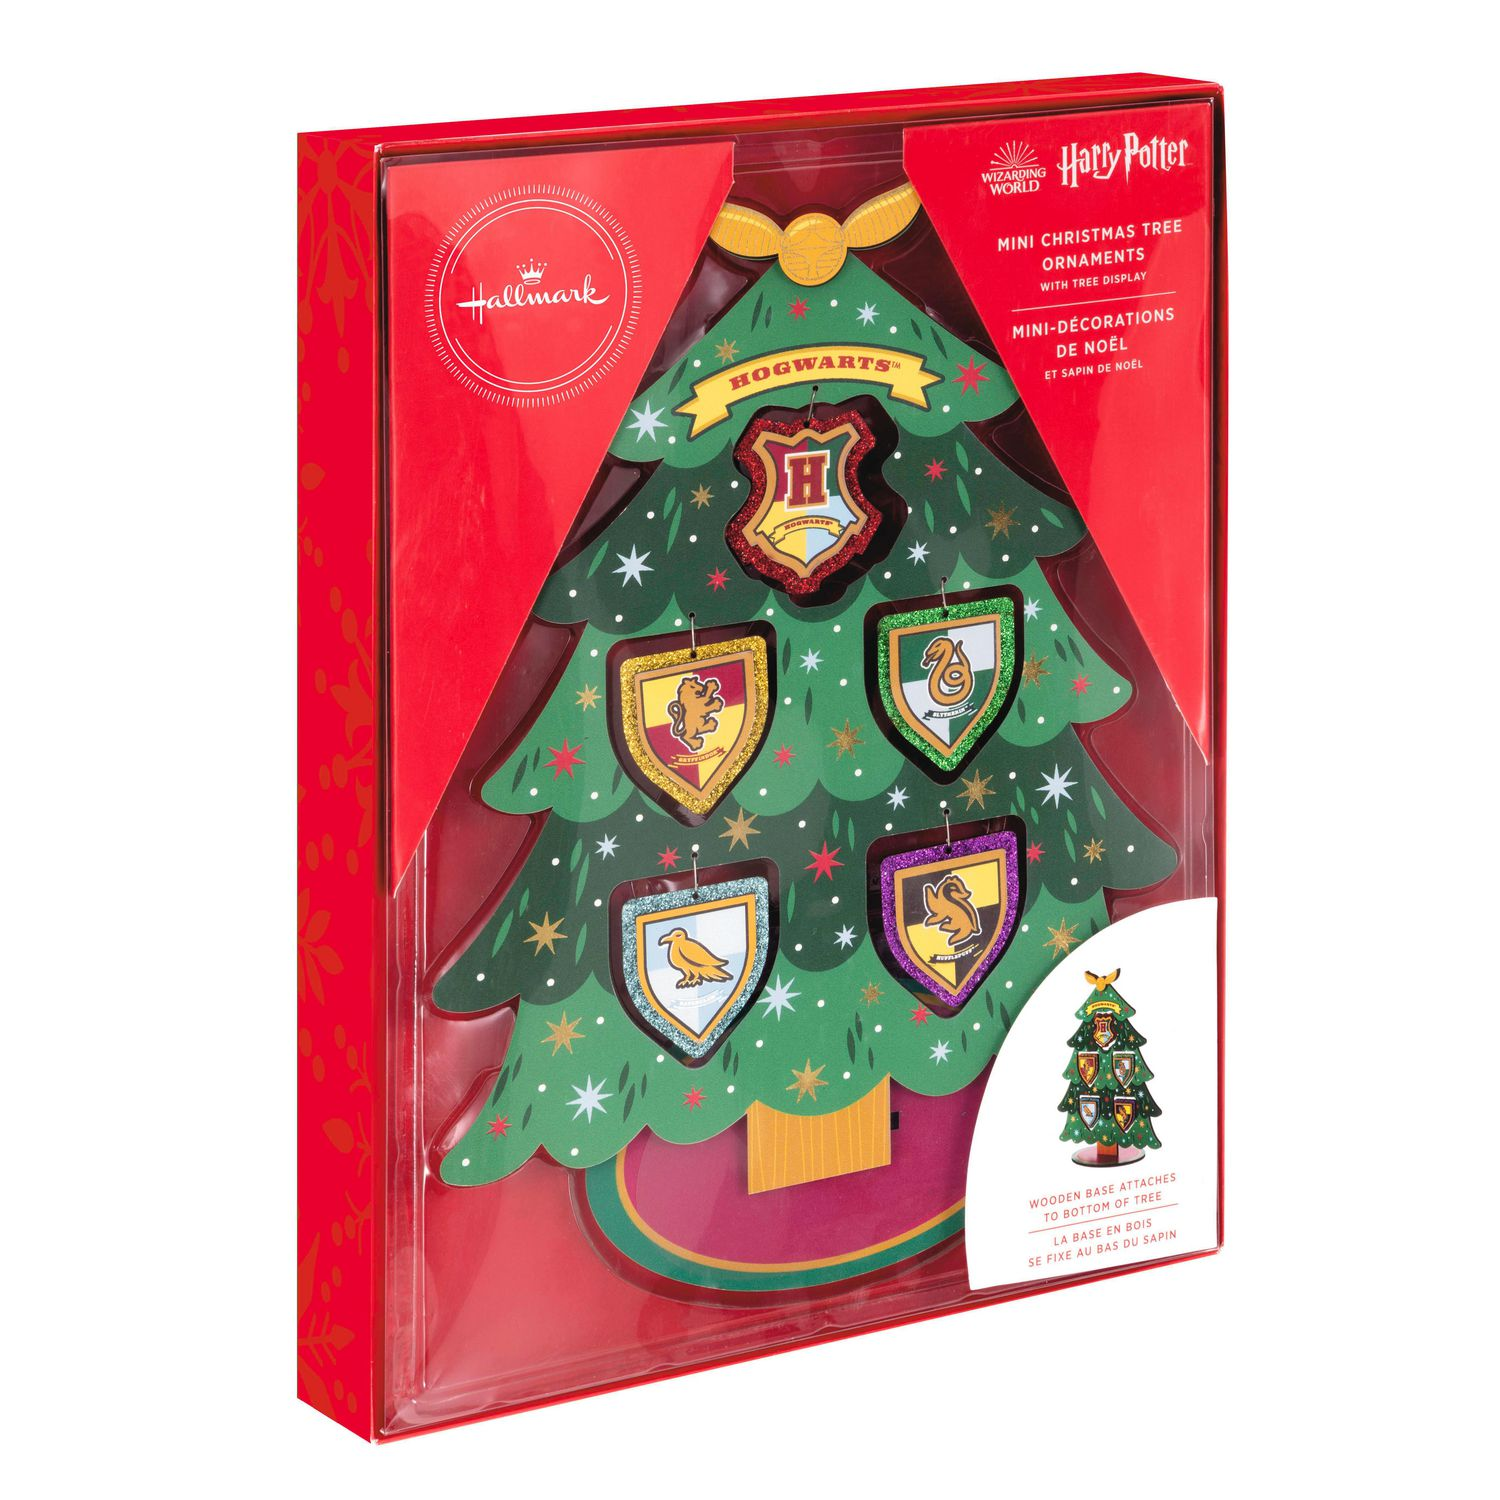 Hallmark Harry Potter Hogwarts Miniature Christmas Tree Set With Mini Ornaments Walmart Canada